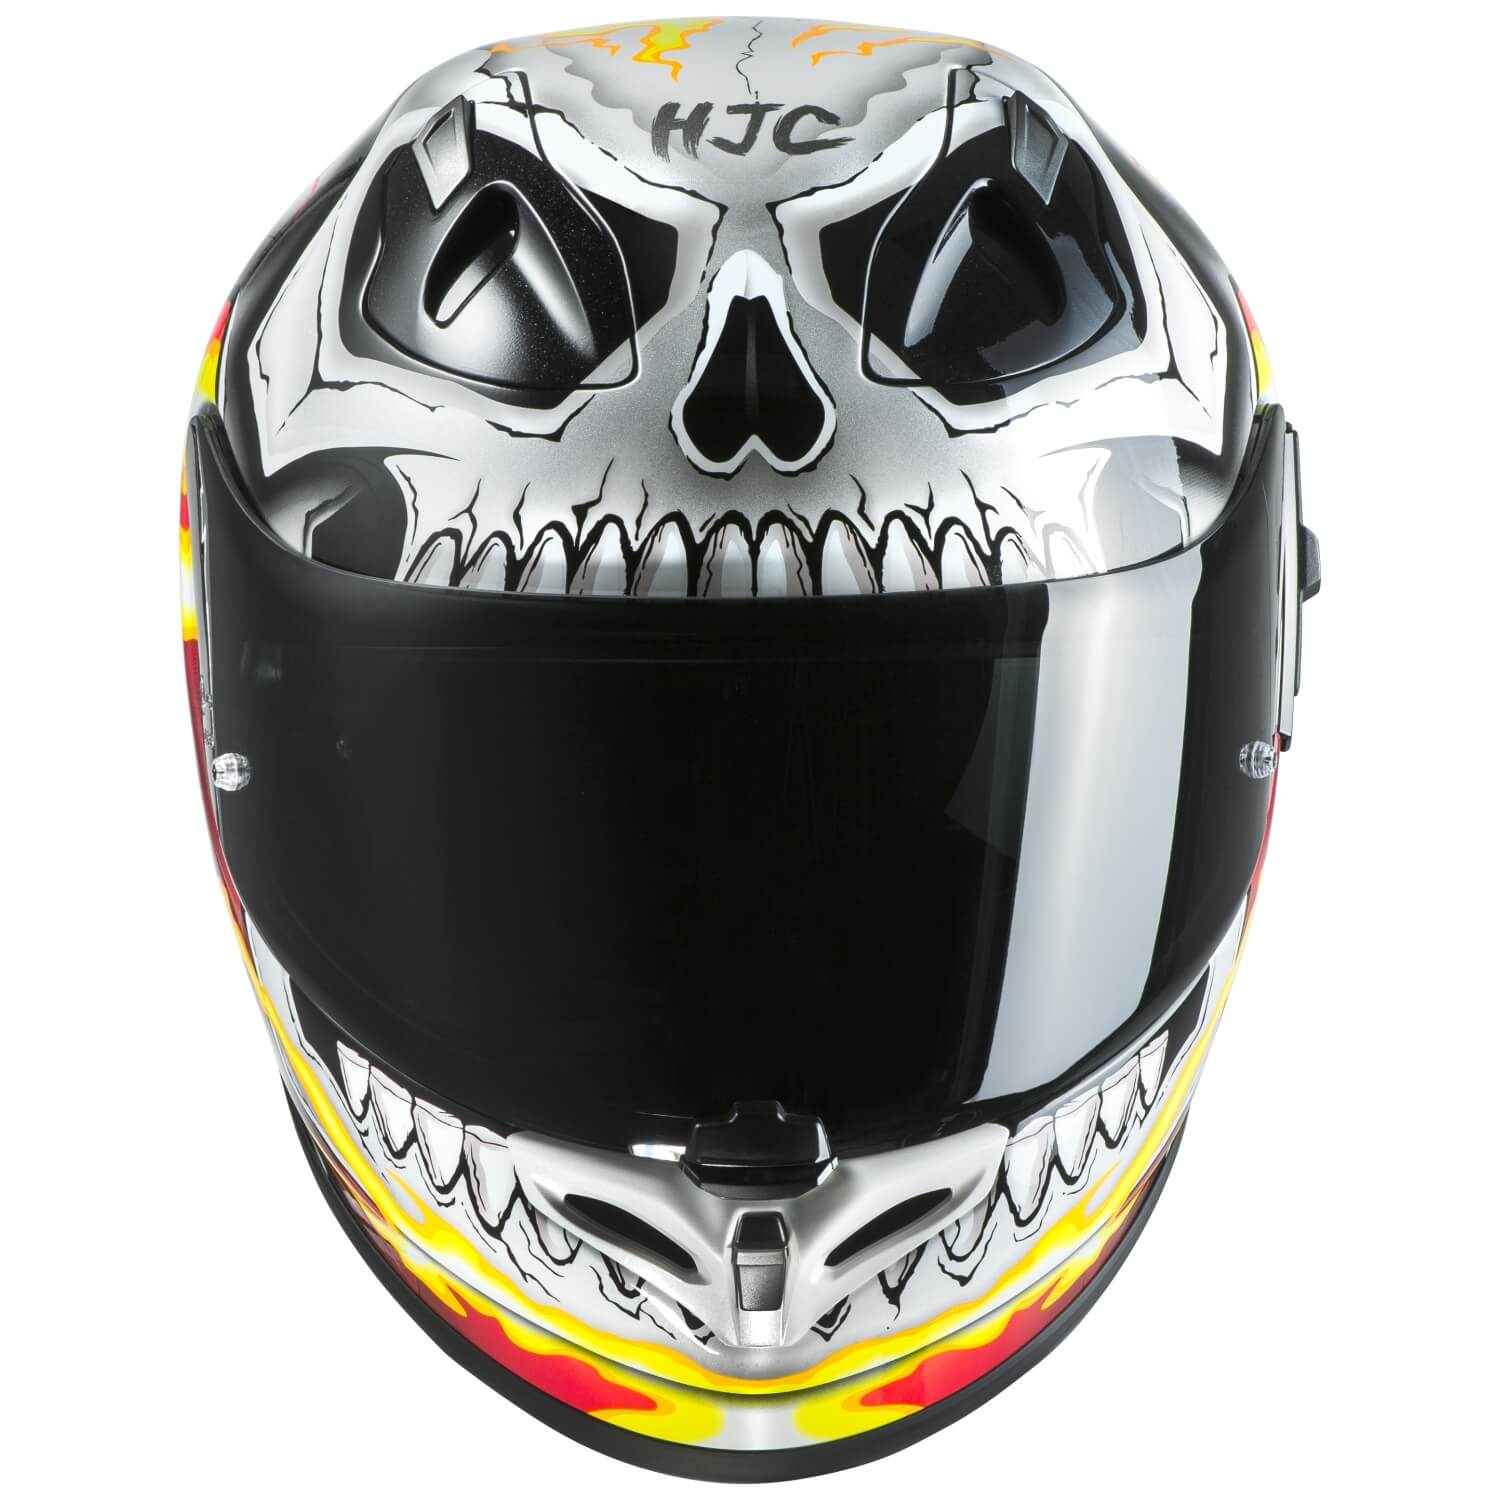 hjc fg st ghost rider motorrad integralhelm touring wei gelb rot. Black Bedroom Furniture Sets. Home Design Ideas